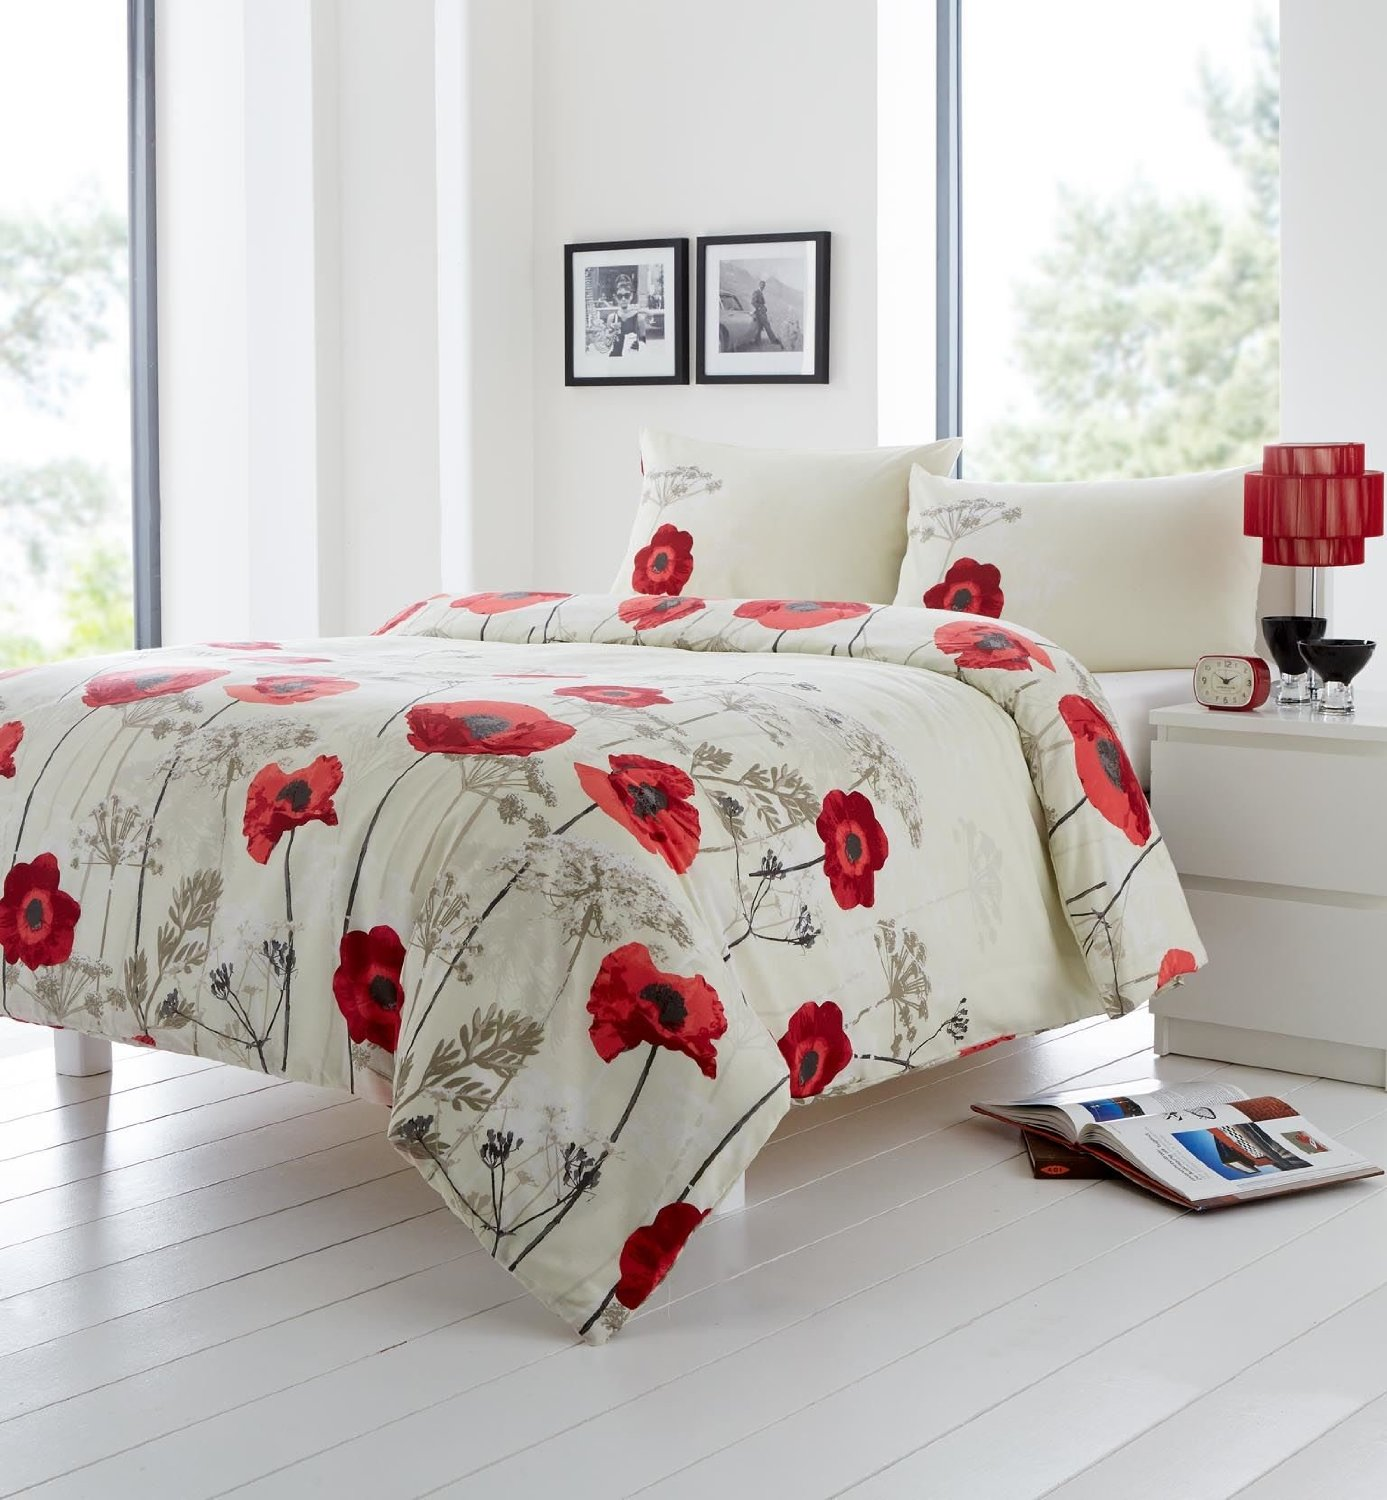 Get Quotations · RED CREAM BEIGE FLORAL POPPY USA FULL (200CM X 200CM   UK  DOUBLE) 120